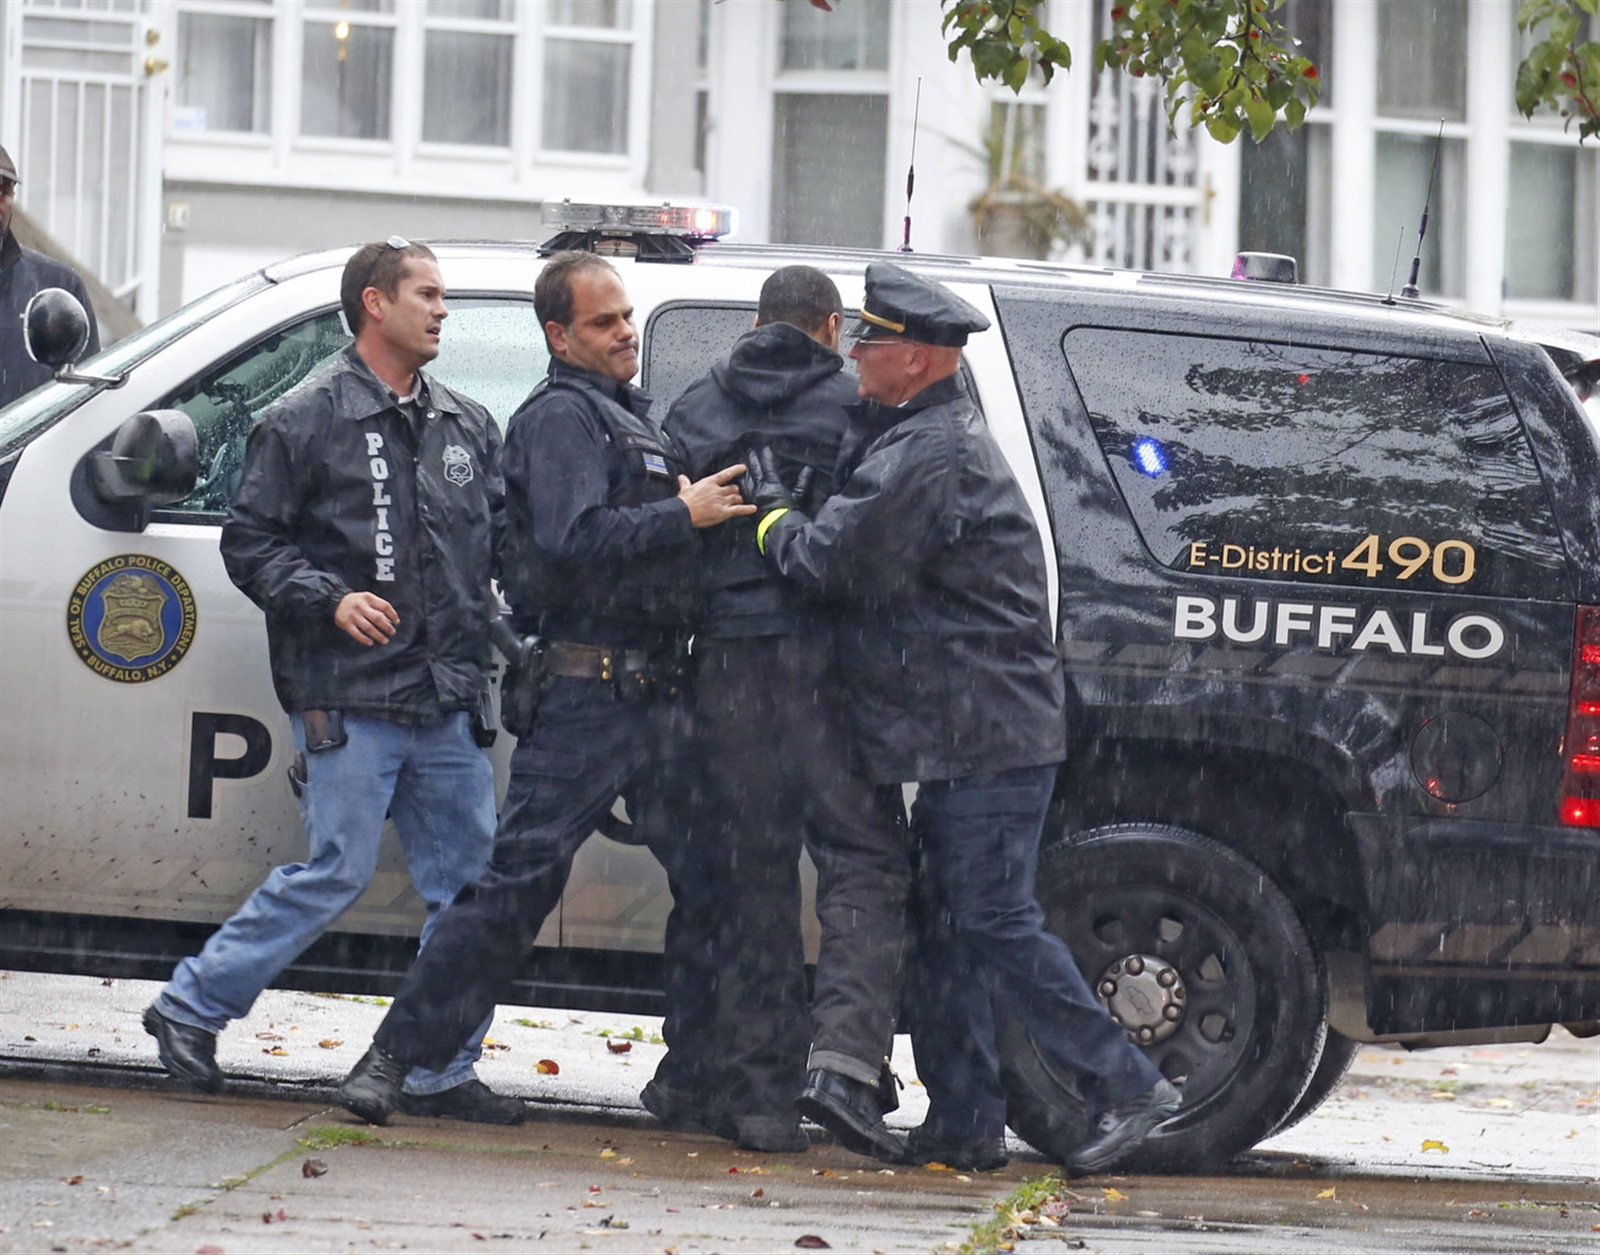 Buffalo police restrain a distressed family member.